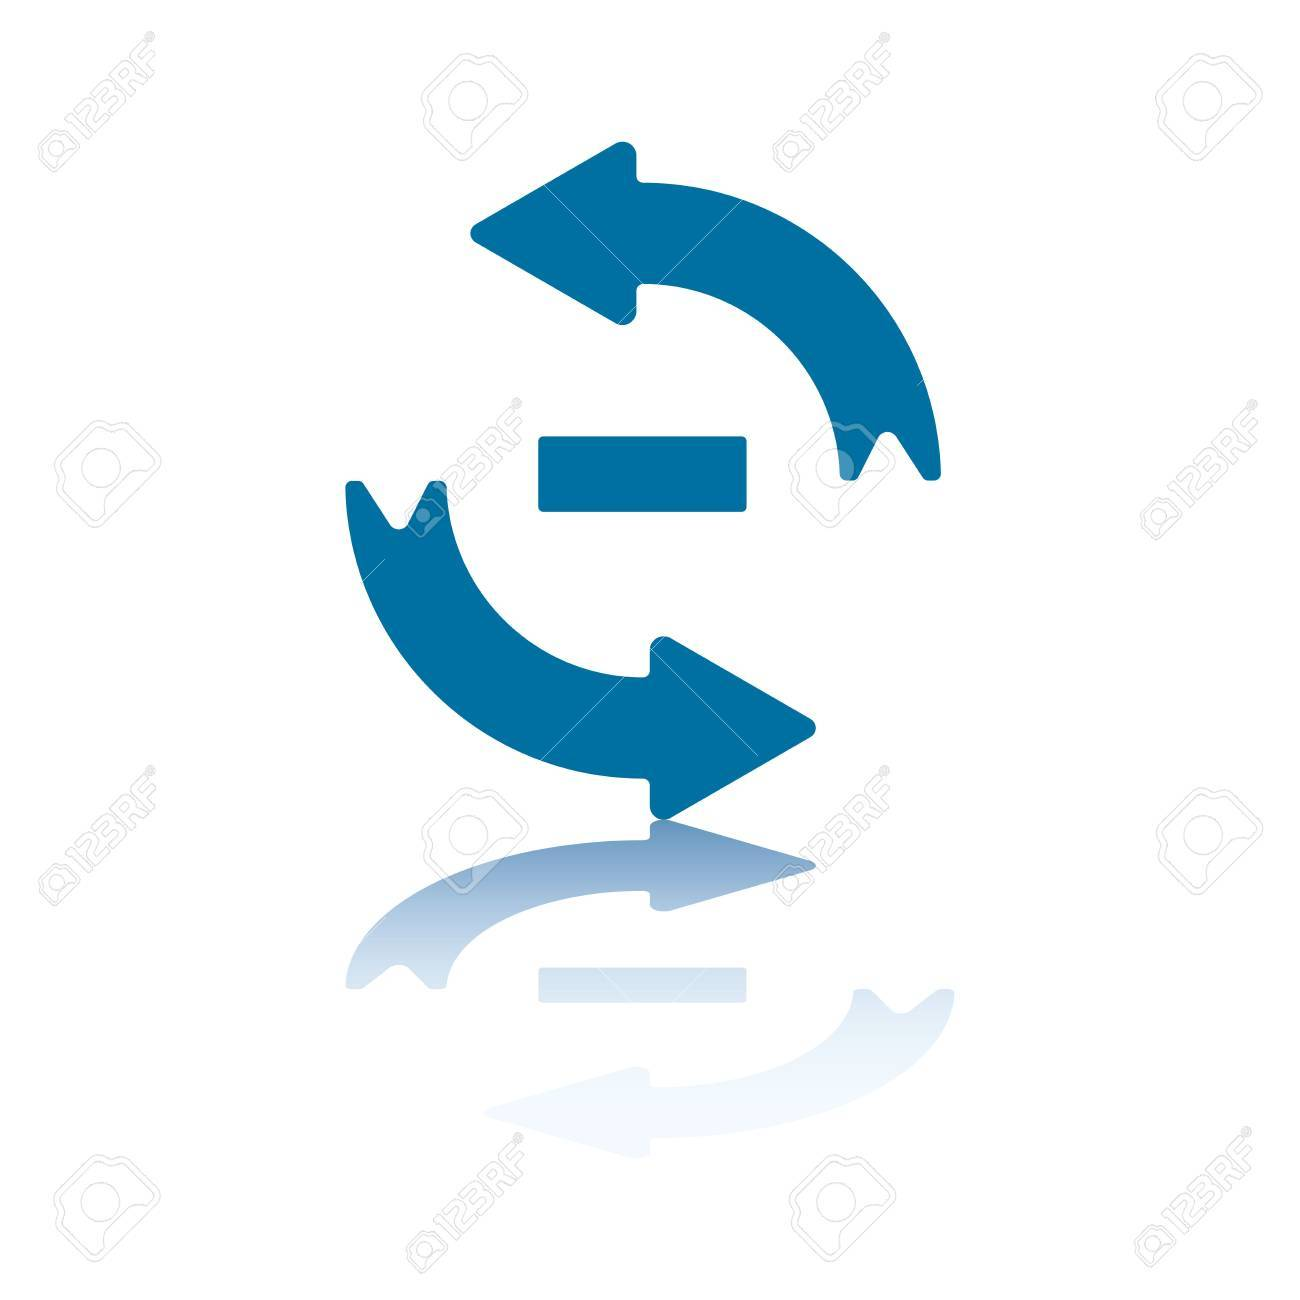 Reload/Refresh Arrows, Two Opposite Symmetrical Arrows with Minus Sign Between Them Stock Photo - 3415989